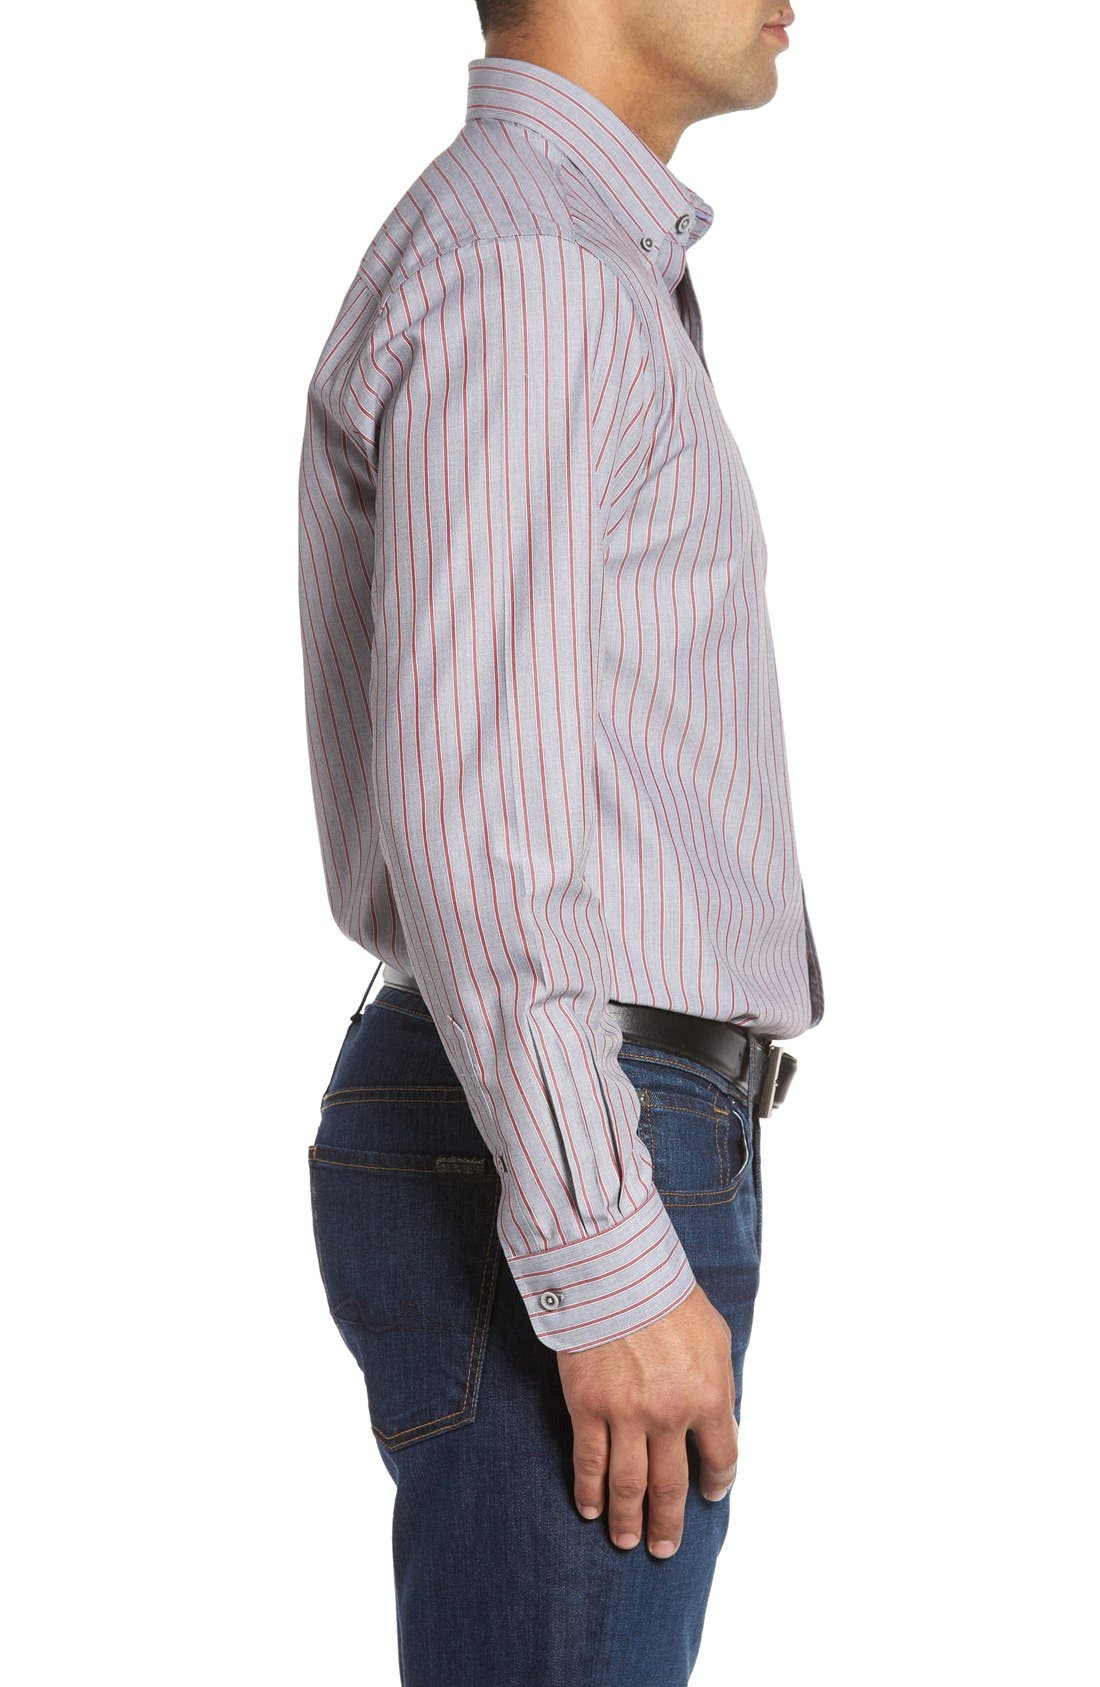 Alternate Image 3  - Cutter & Buck 'Peak' Classic Fit Wrinkle Free Stripe Sport Shirt